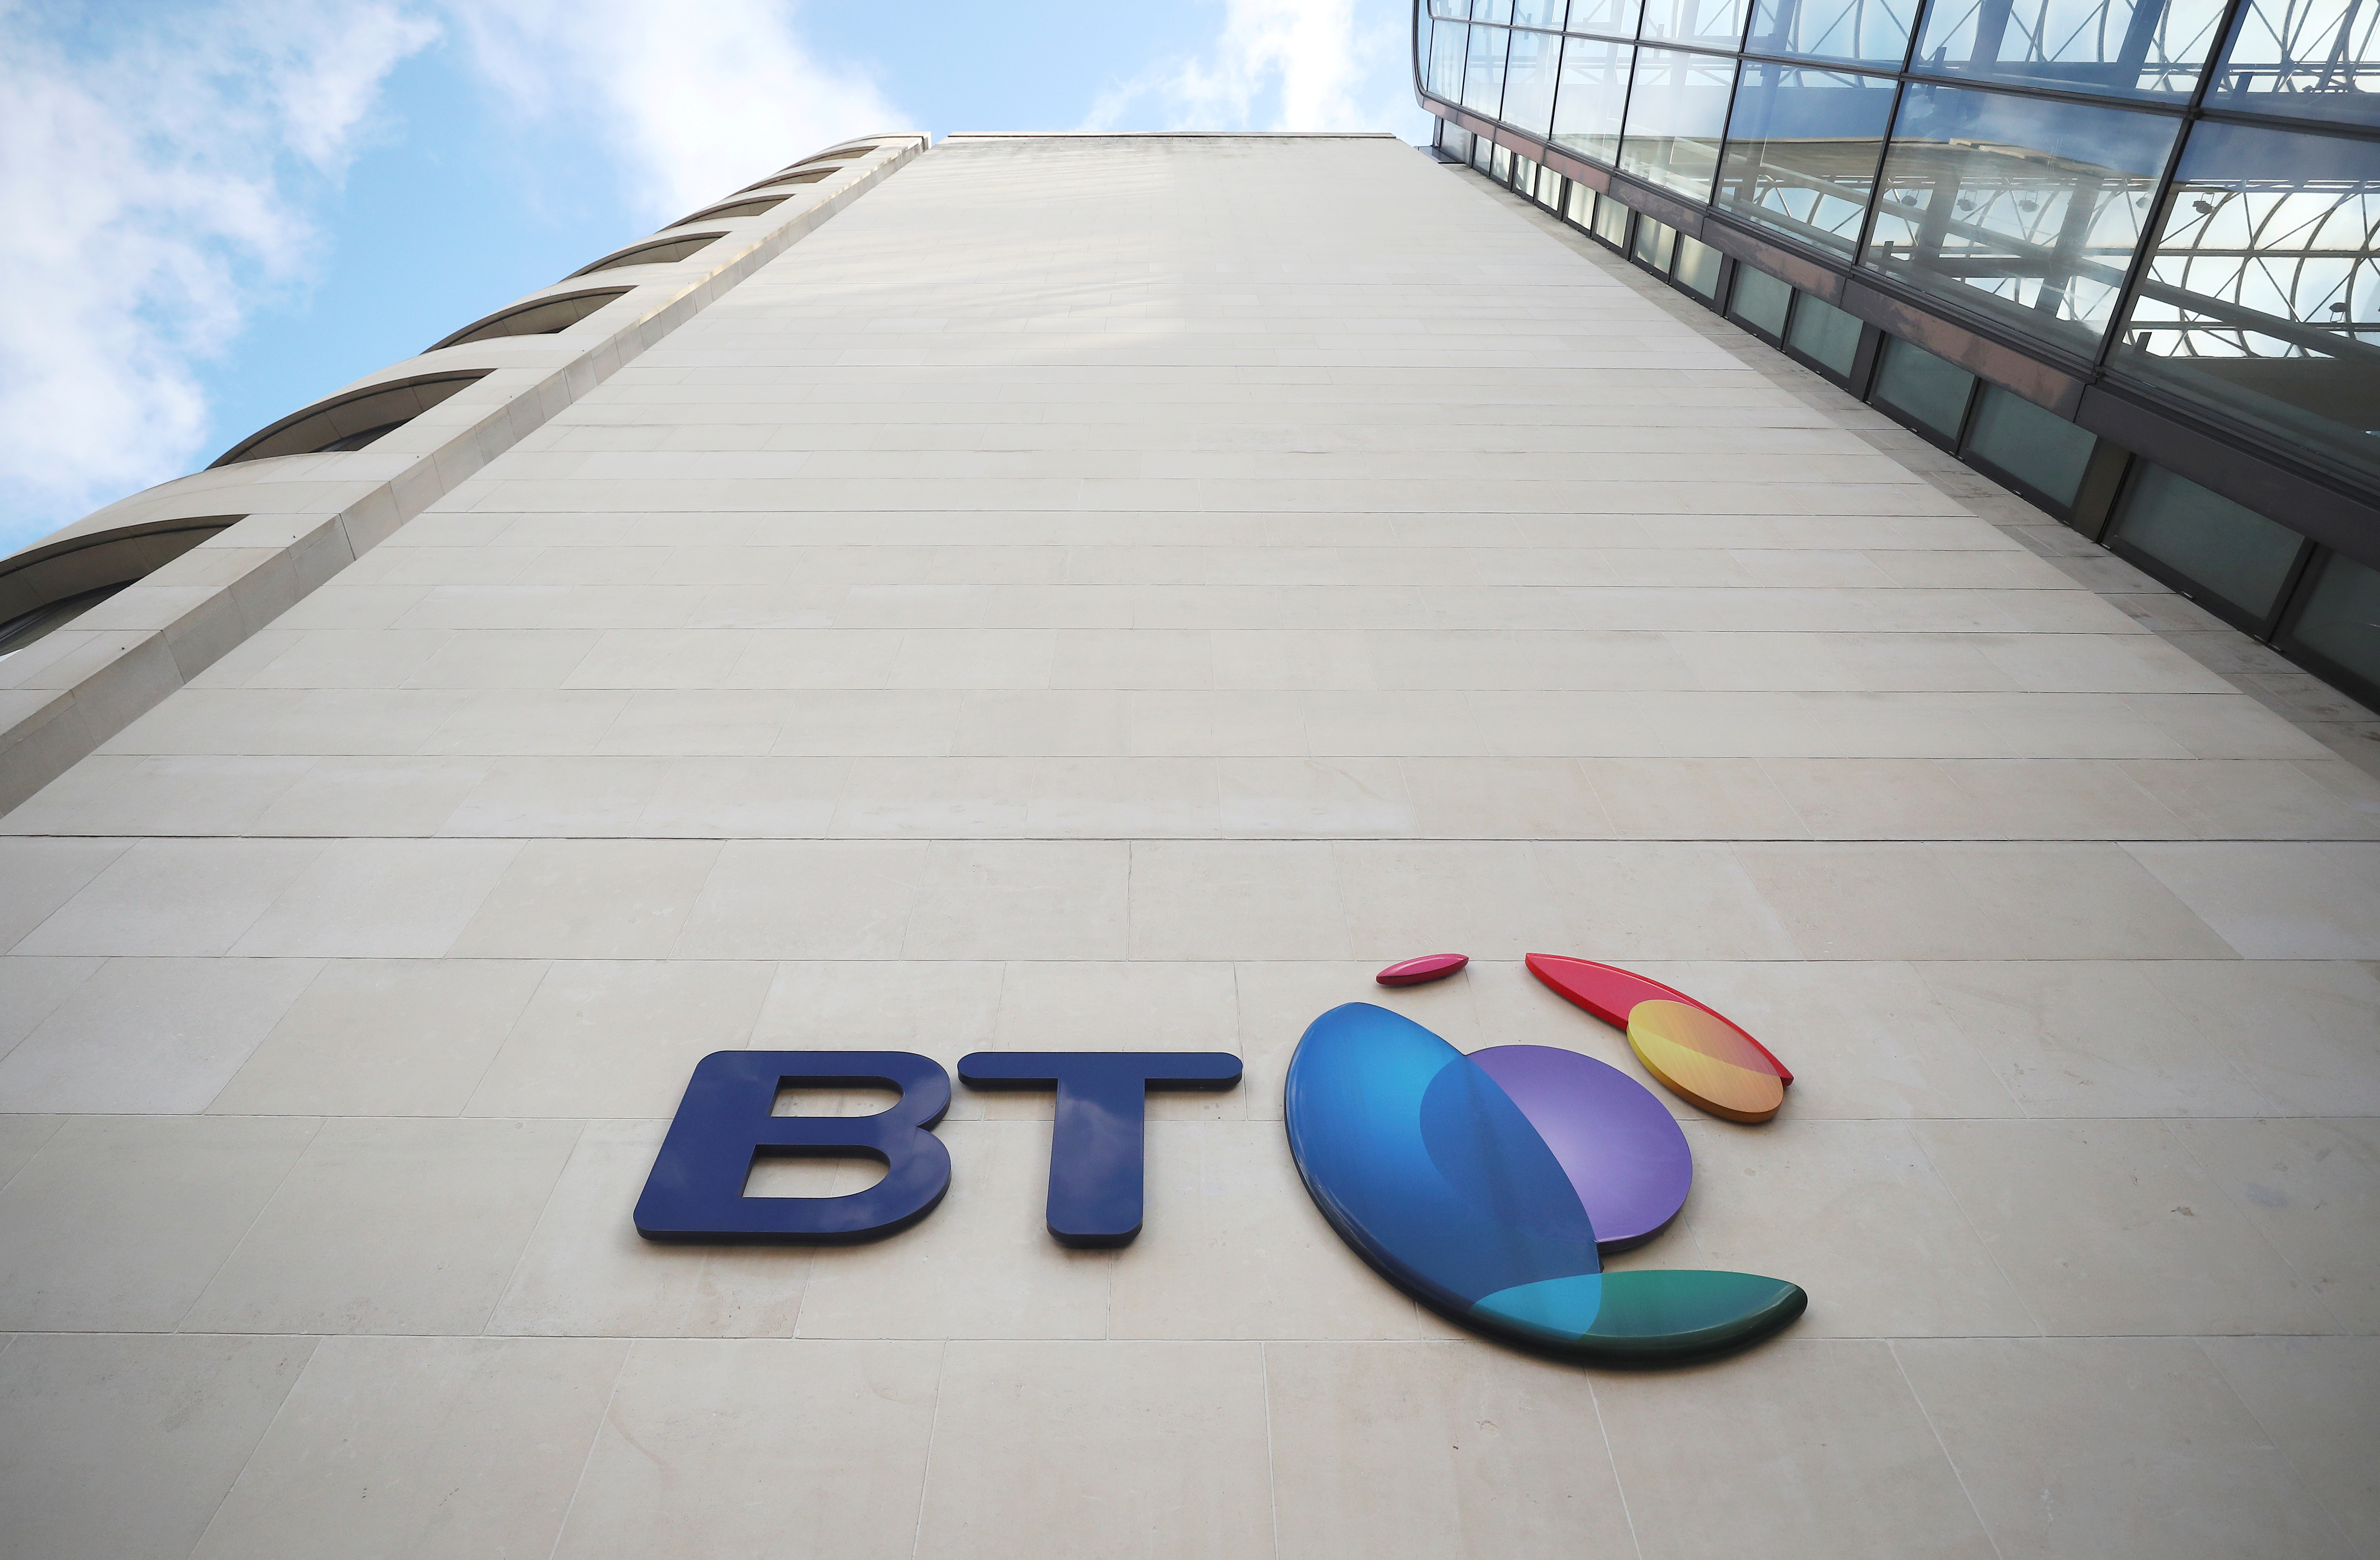 British Telecom (BT)'s headquarters is seen in central London, Britain May 10, 2018. REUTERS/Hannah McKay/File Photo